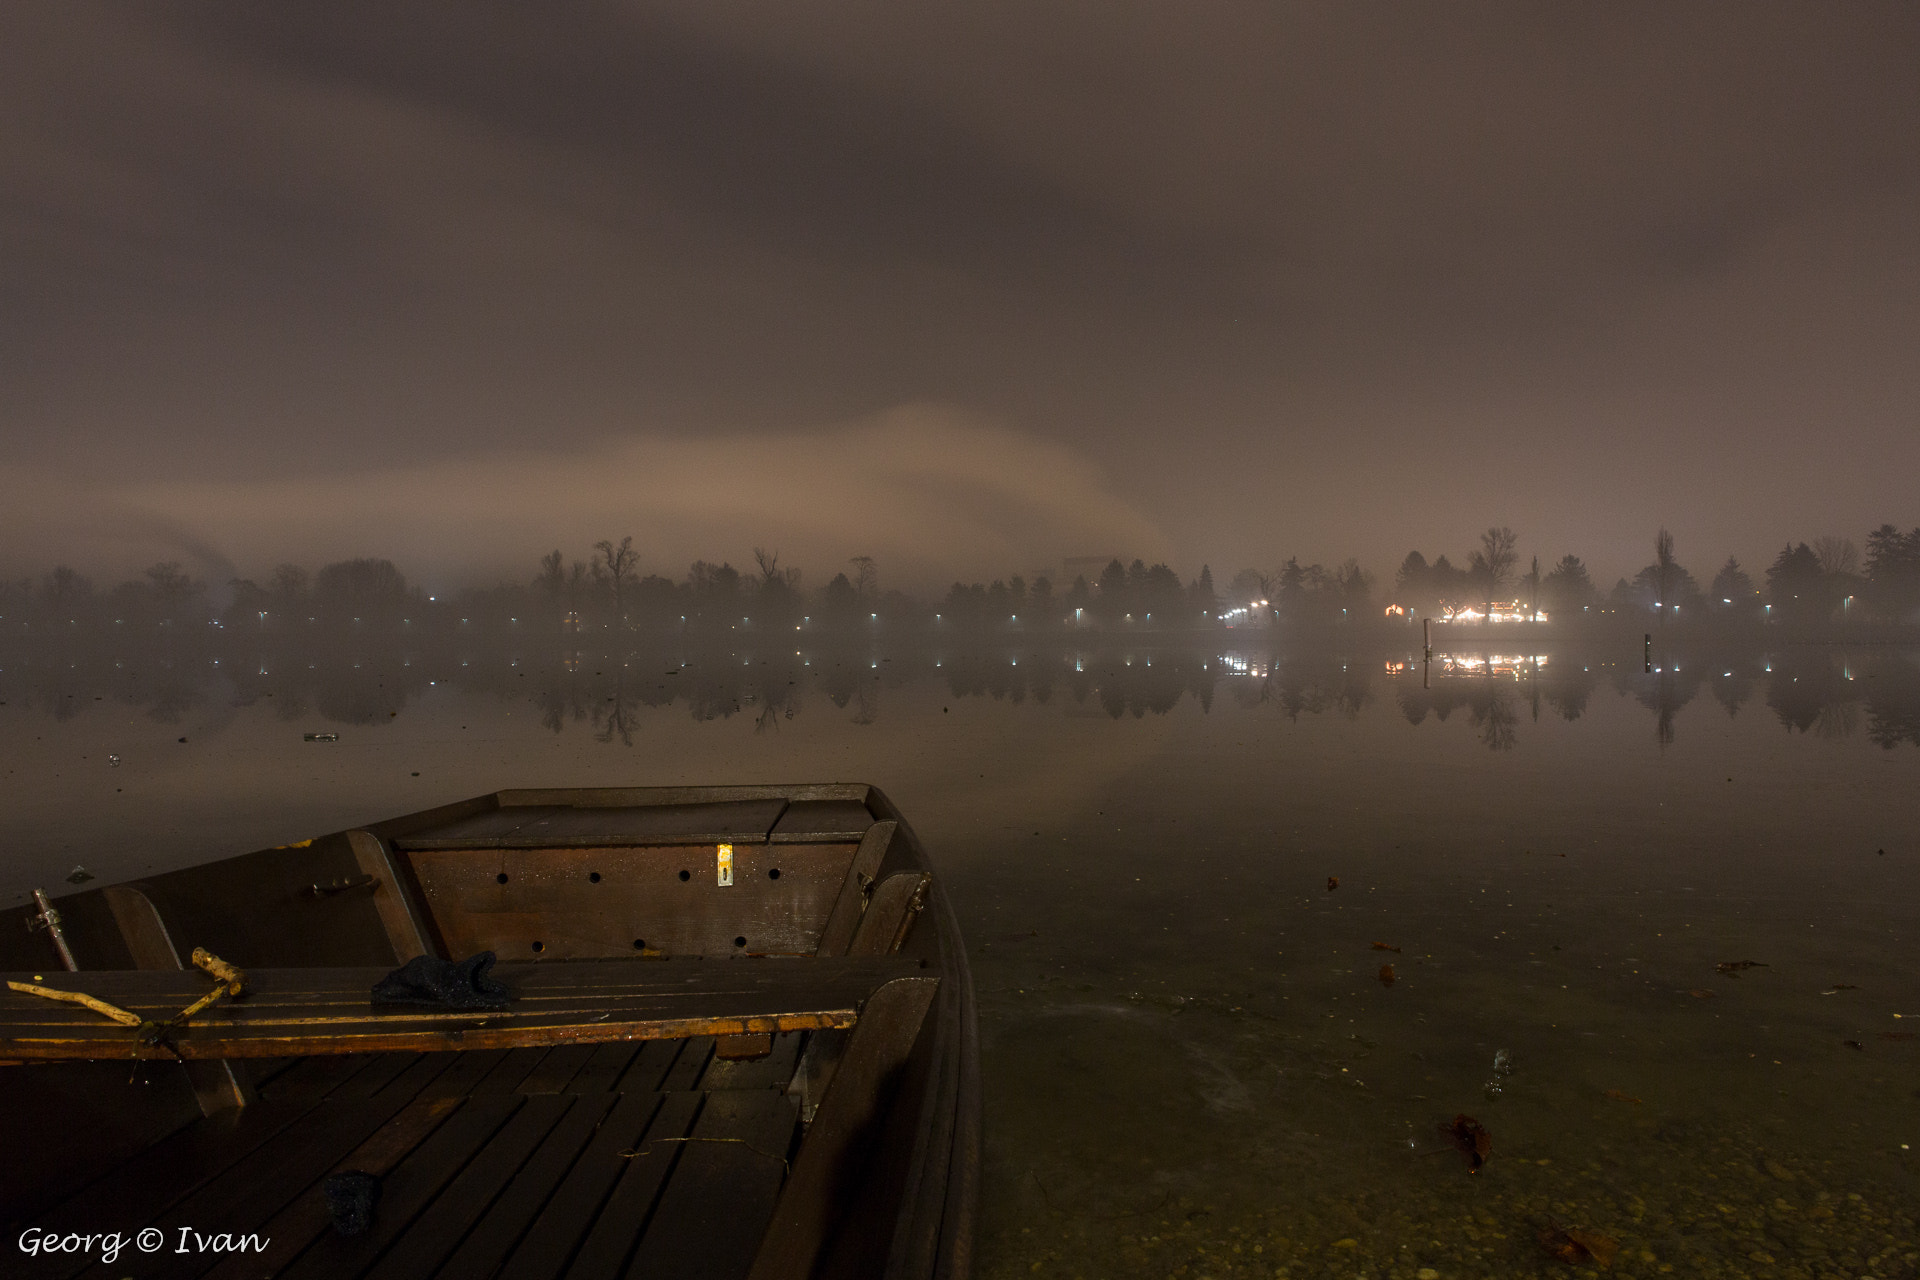 Photograph Fog on the old Danube I by Georg Ivan on 500px